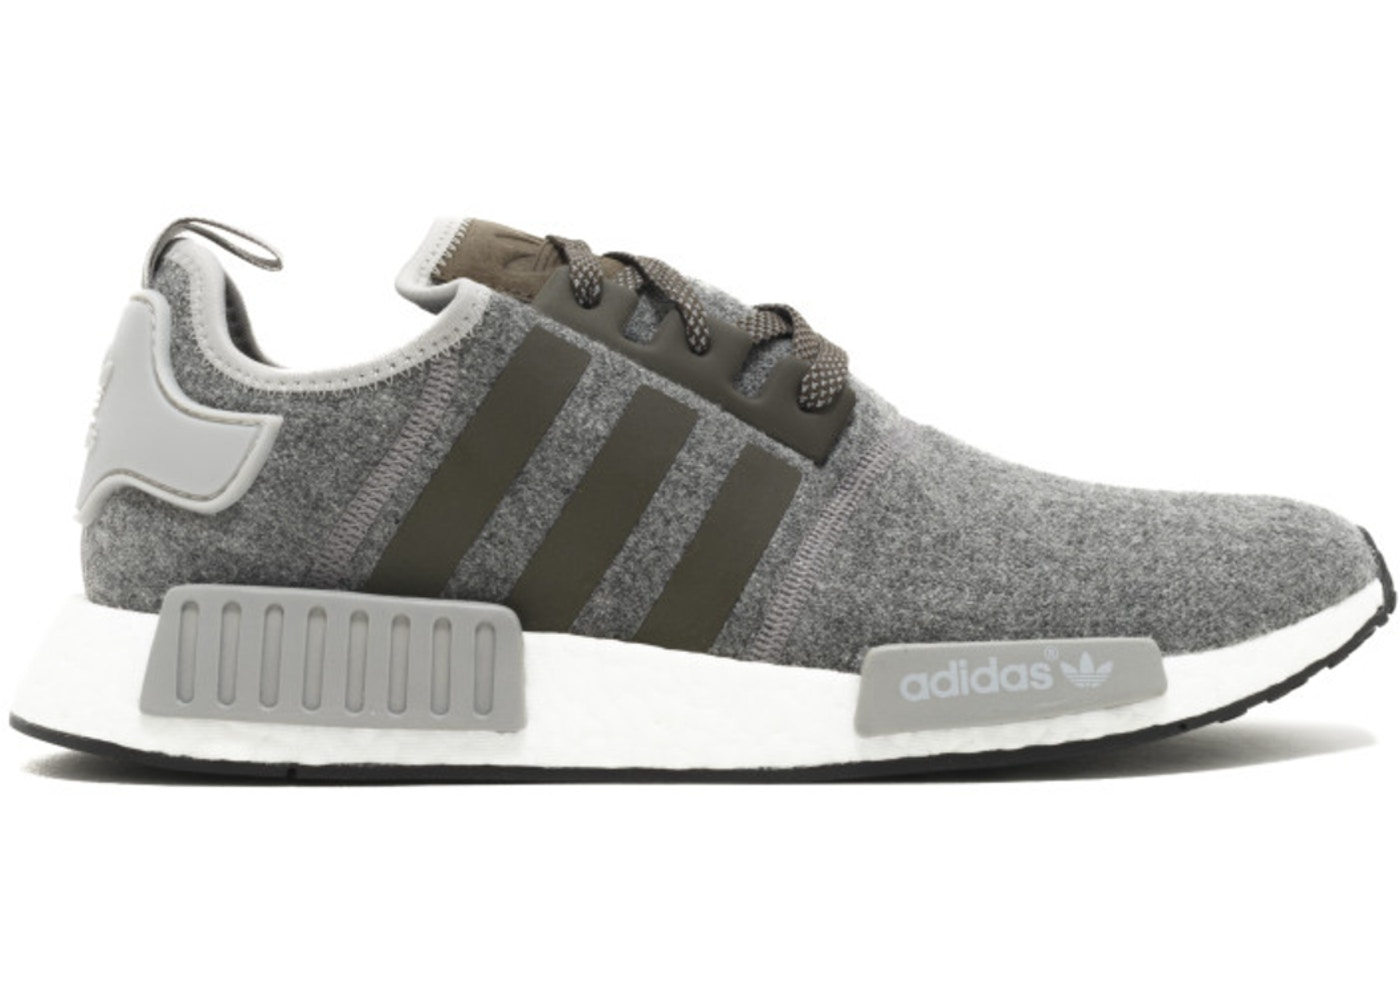 timeless design 8c424 0e1f0 adidas NMD R1 Charcoal Wool